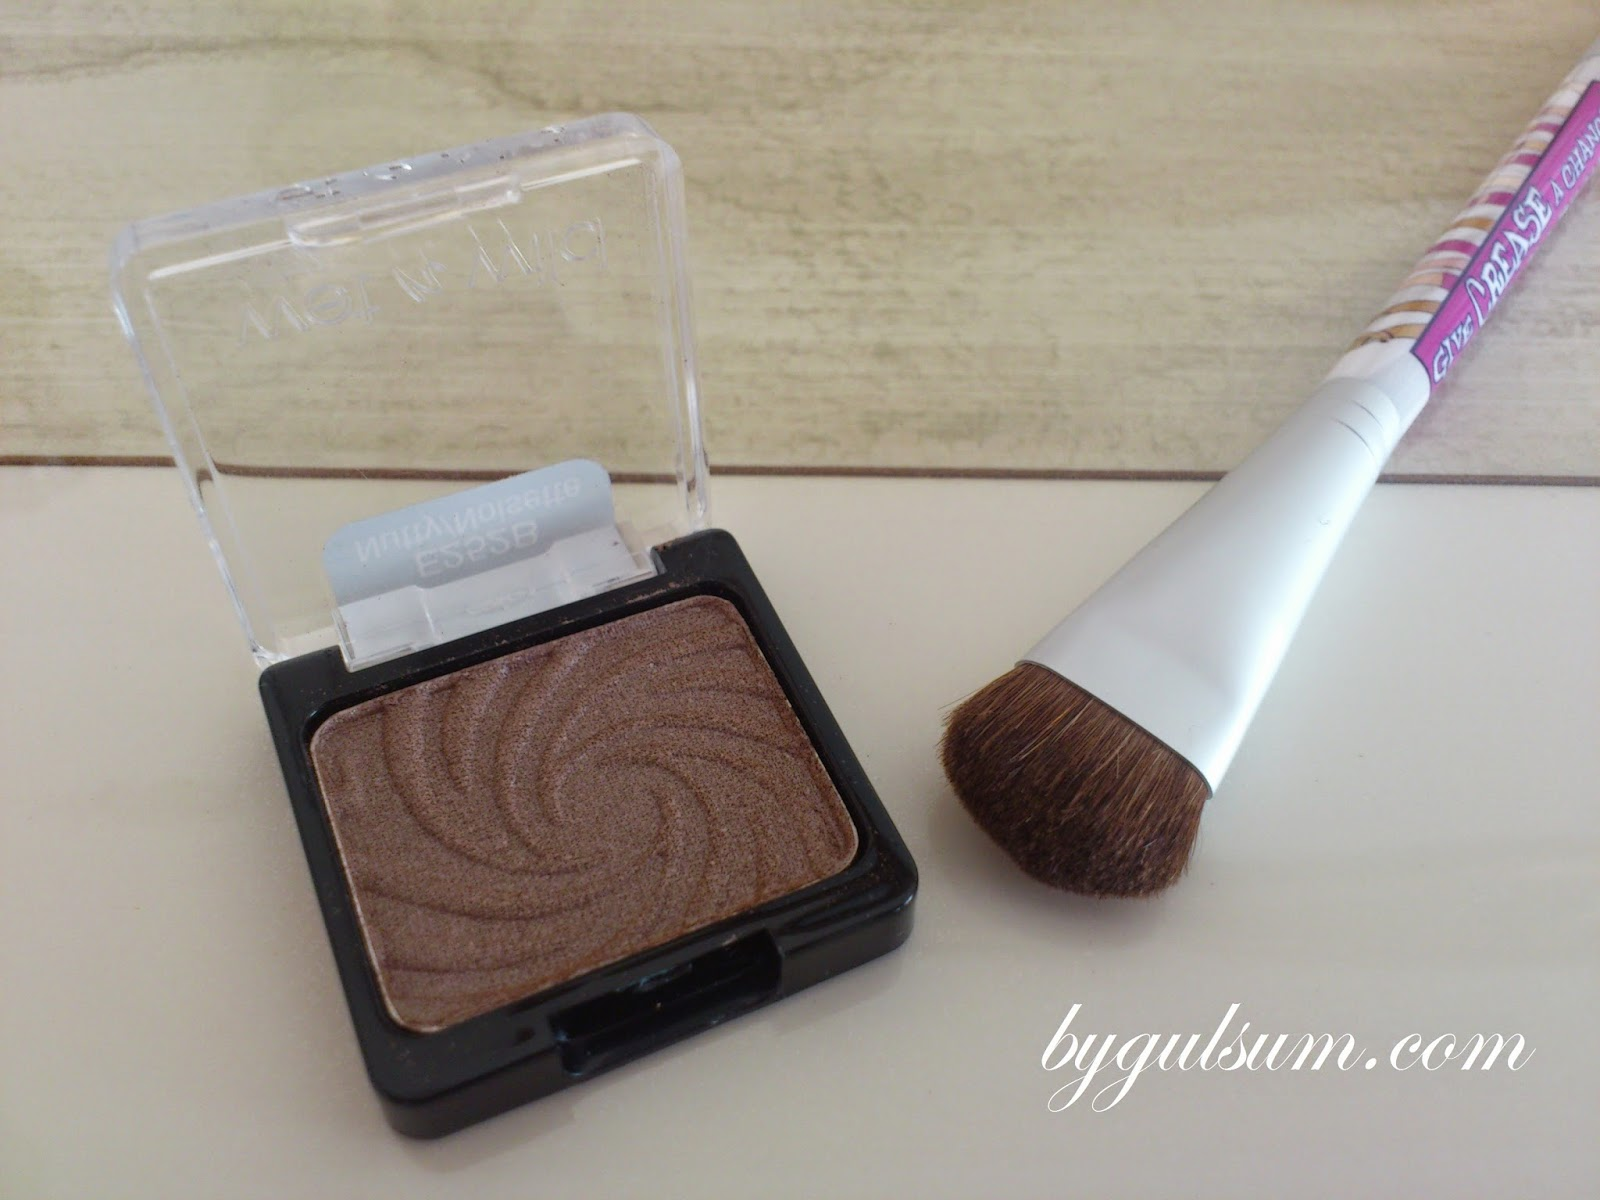 Wet n Wild Nutty / Noisette